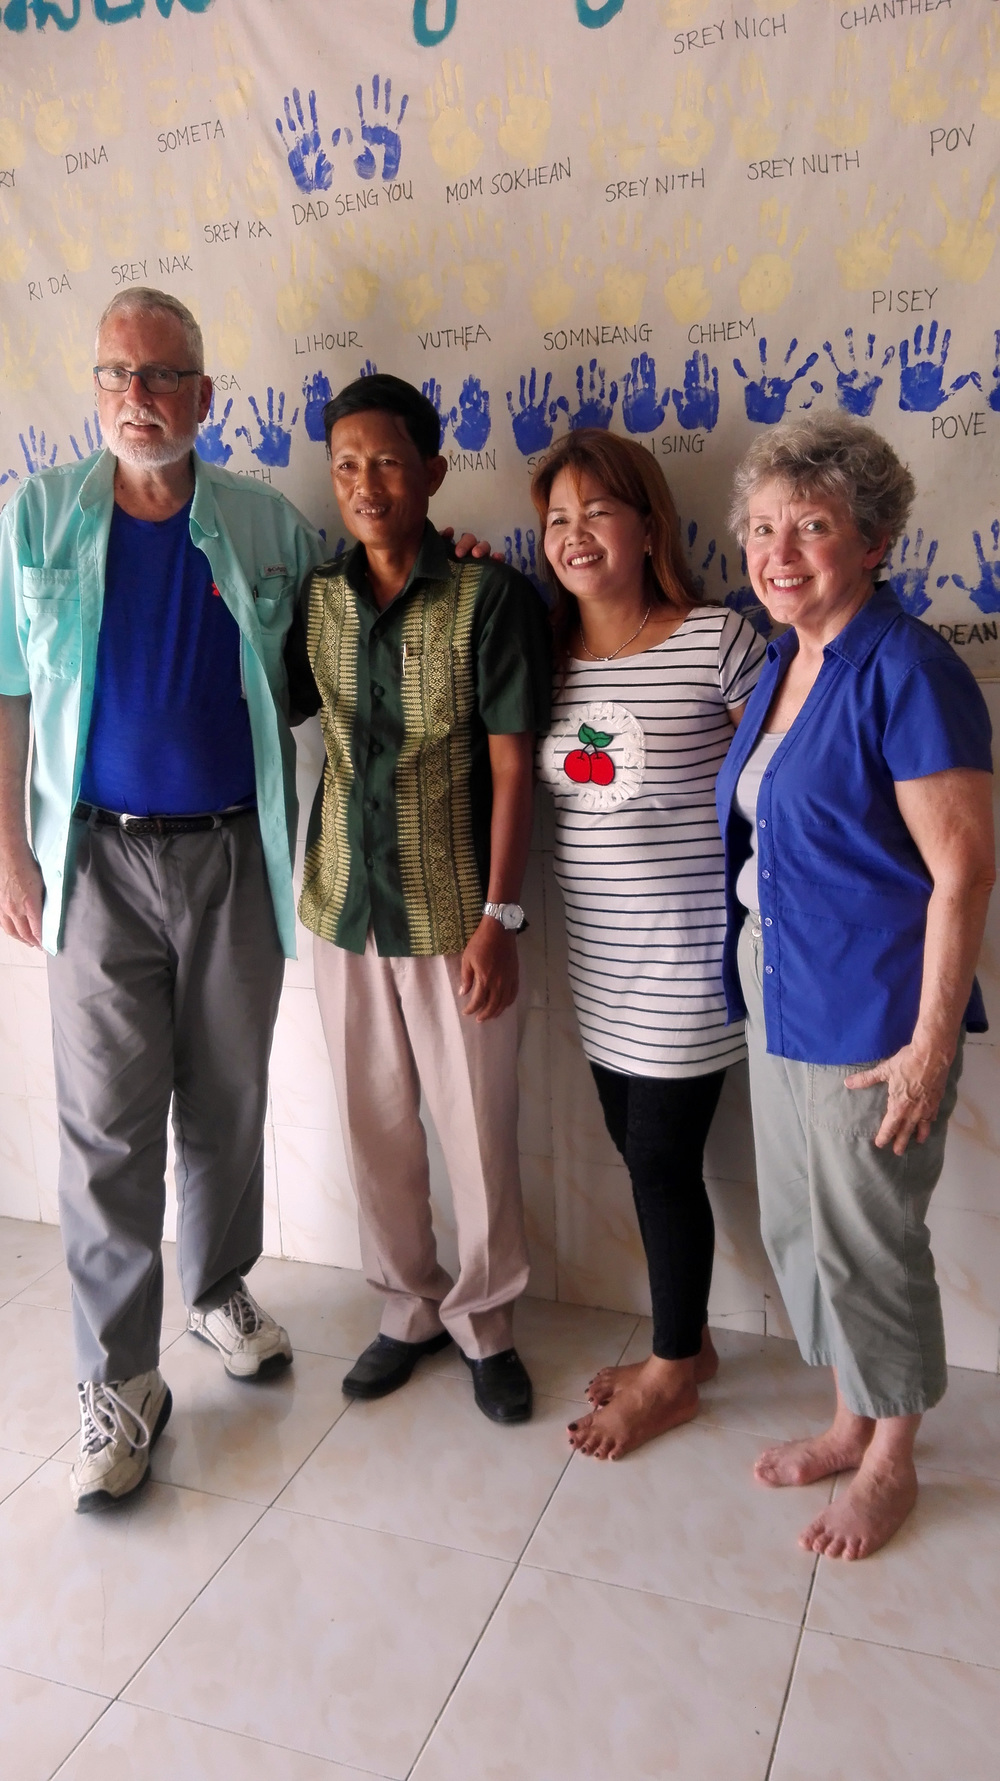 Asia's Hope Board member, John Campbell, and his wife Bobby, visiting with old friends!